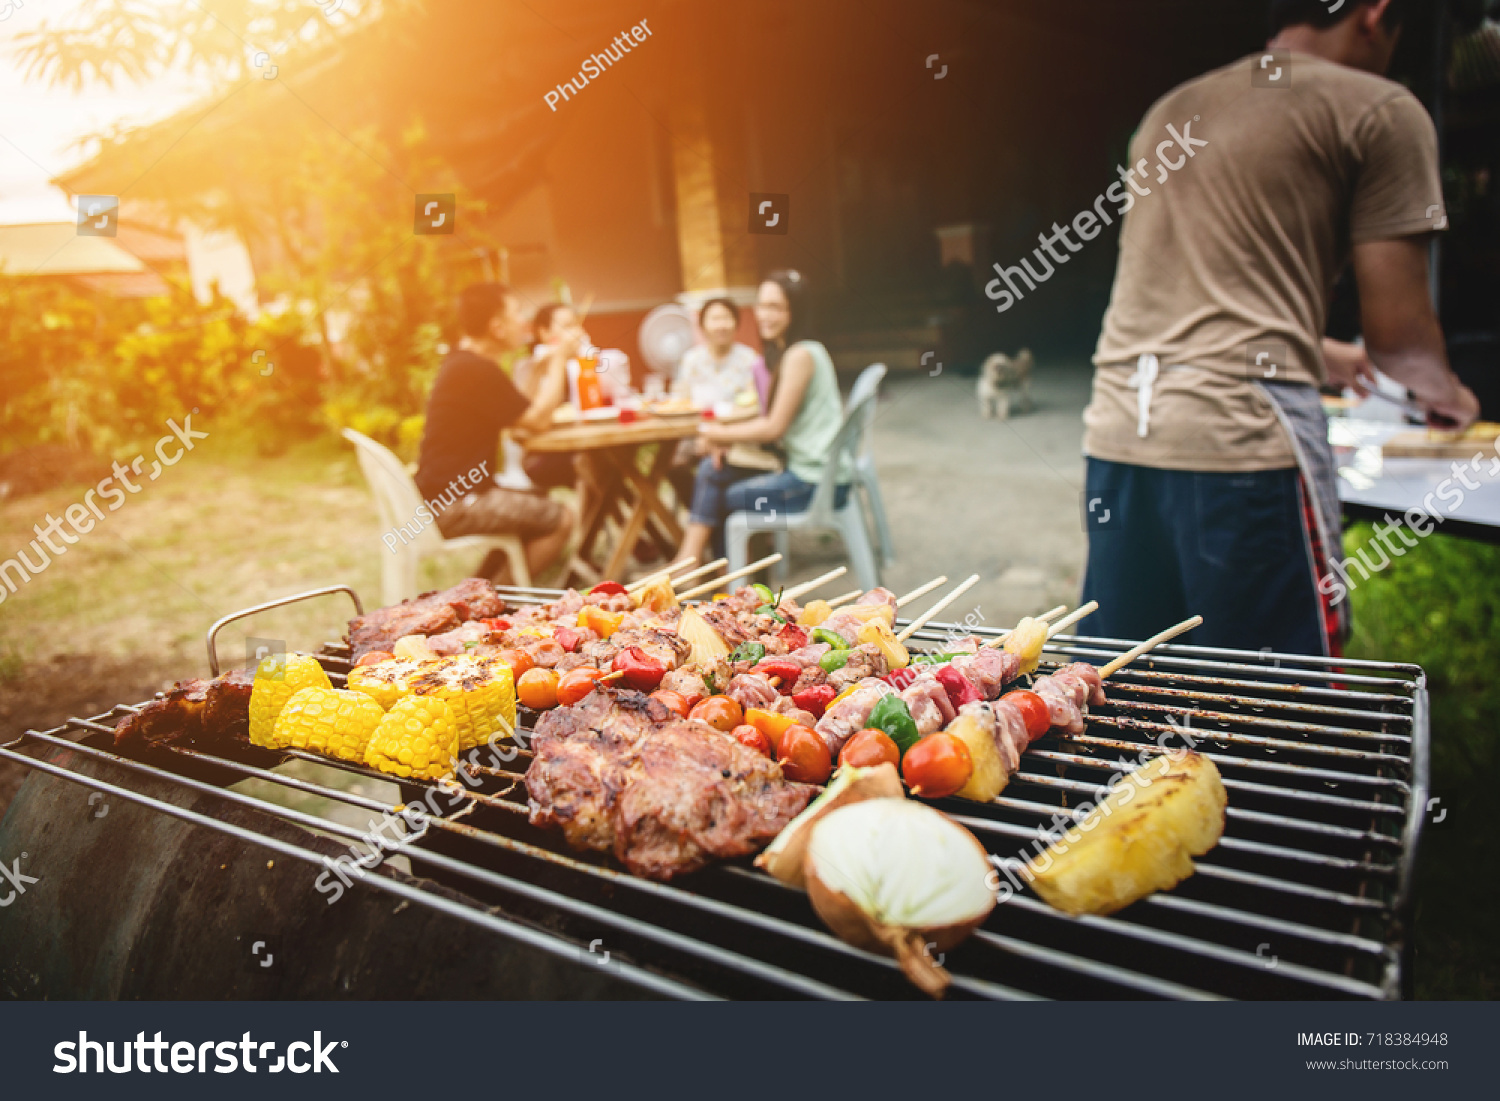 bbq food party summer grilling meat stock photo edit now 718384948